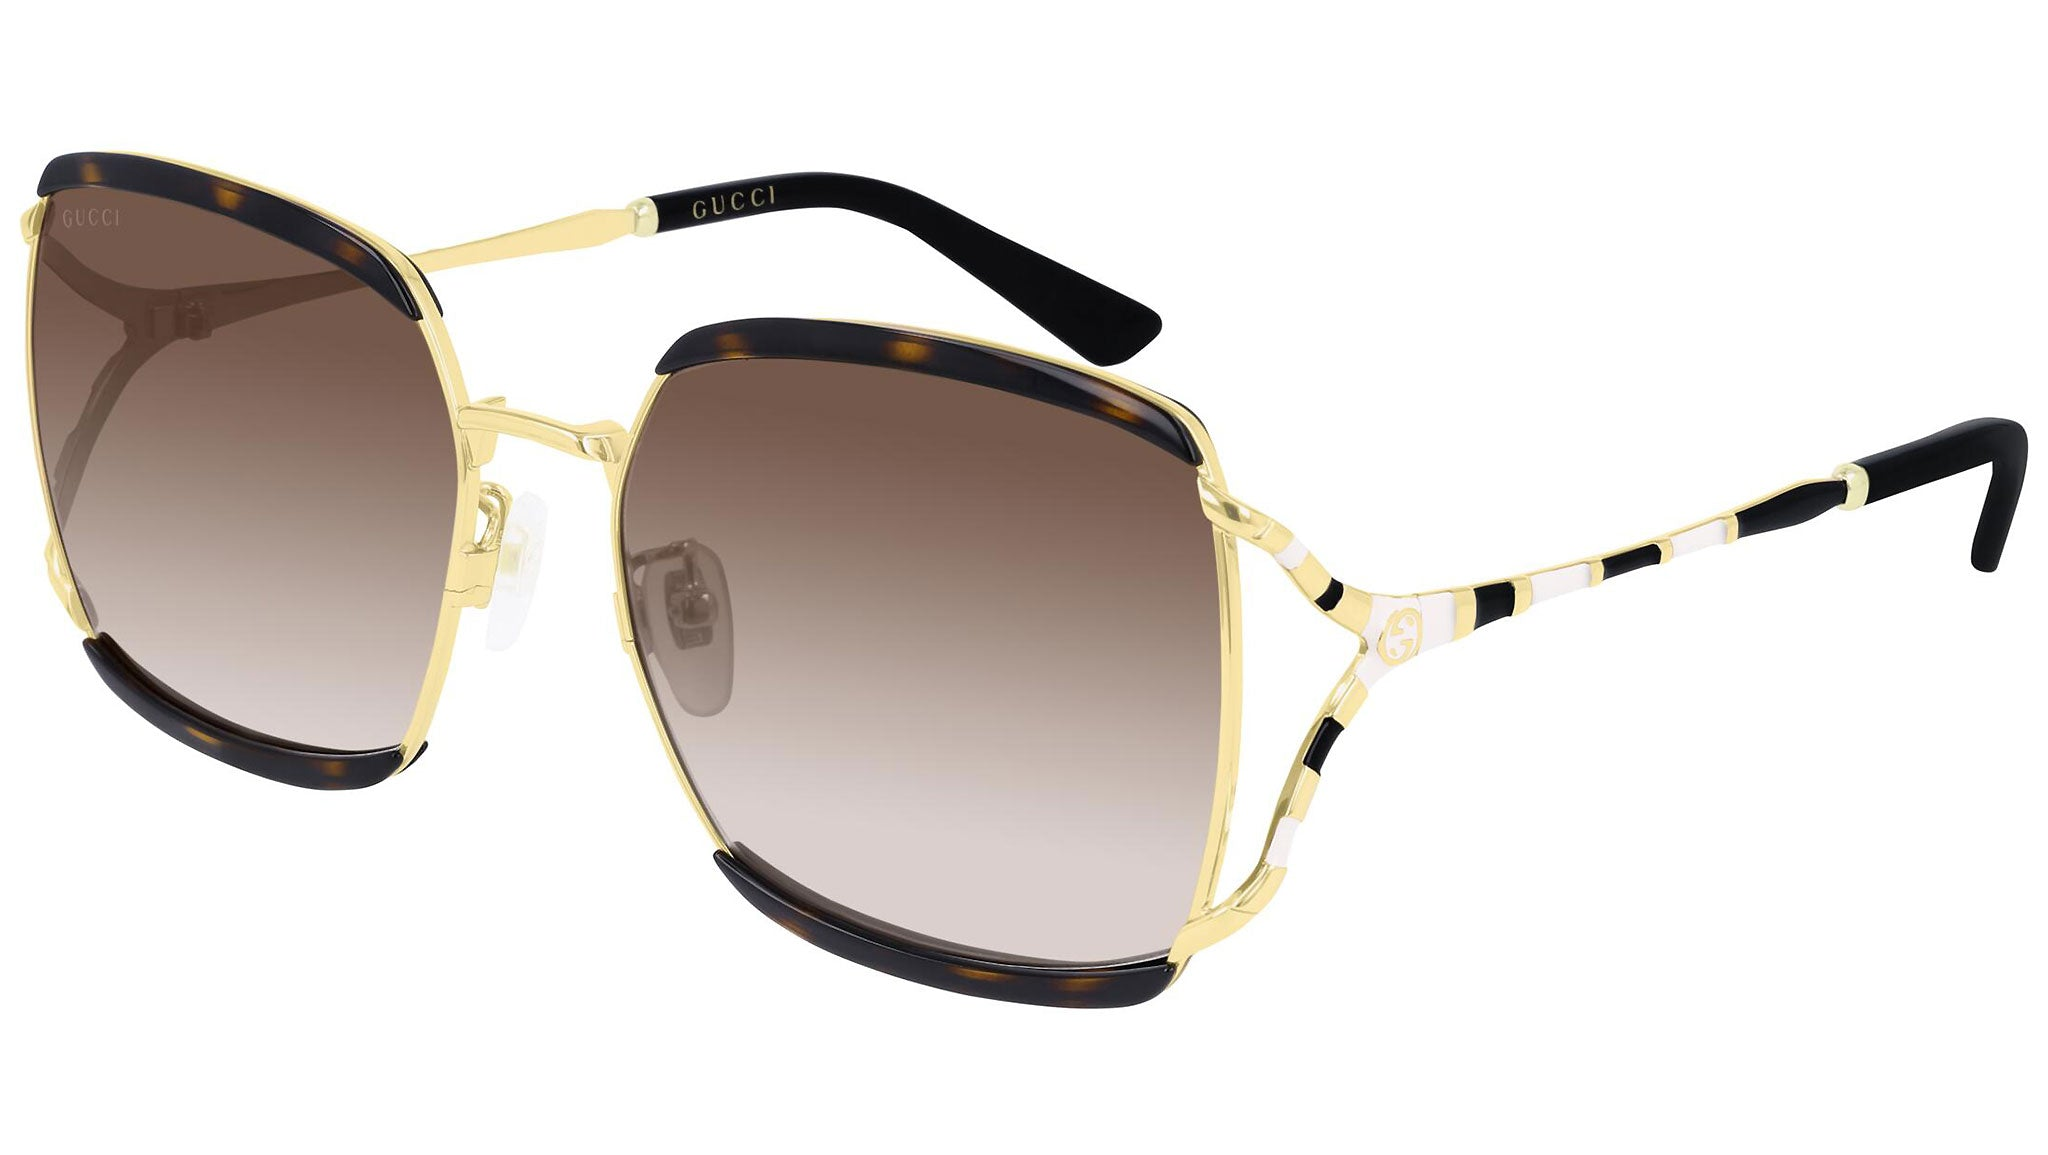 GG0593SK gold havana and brown